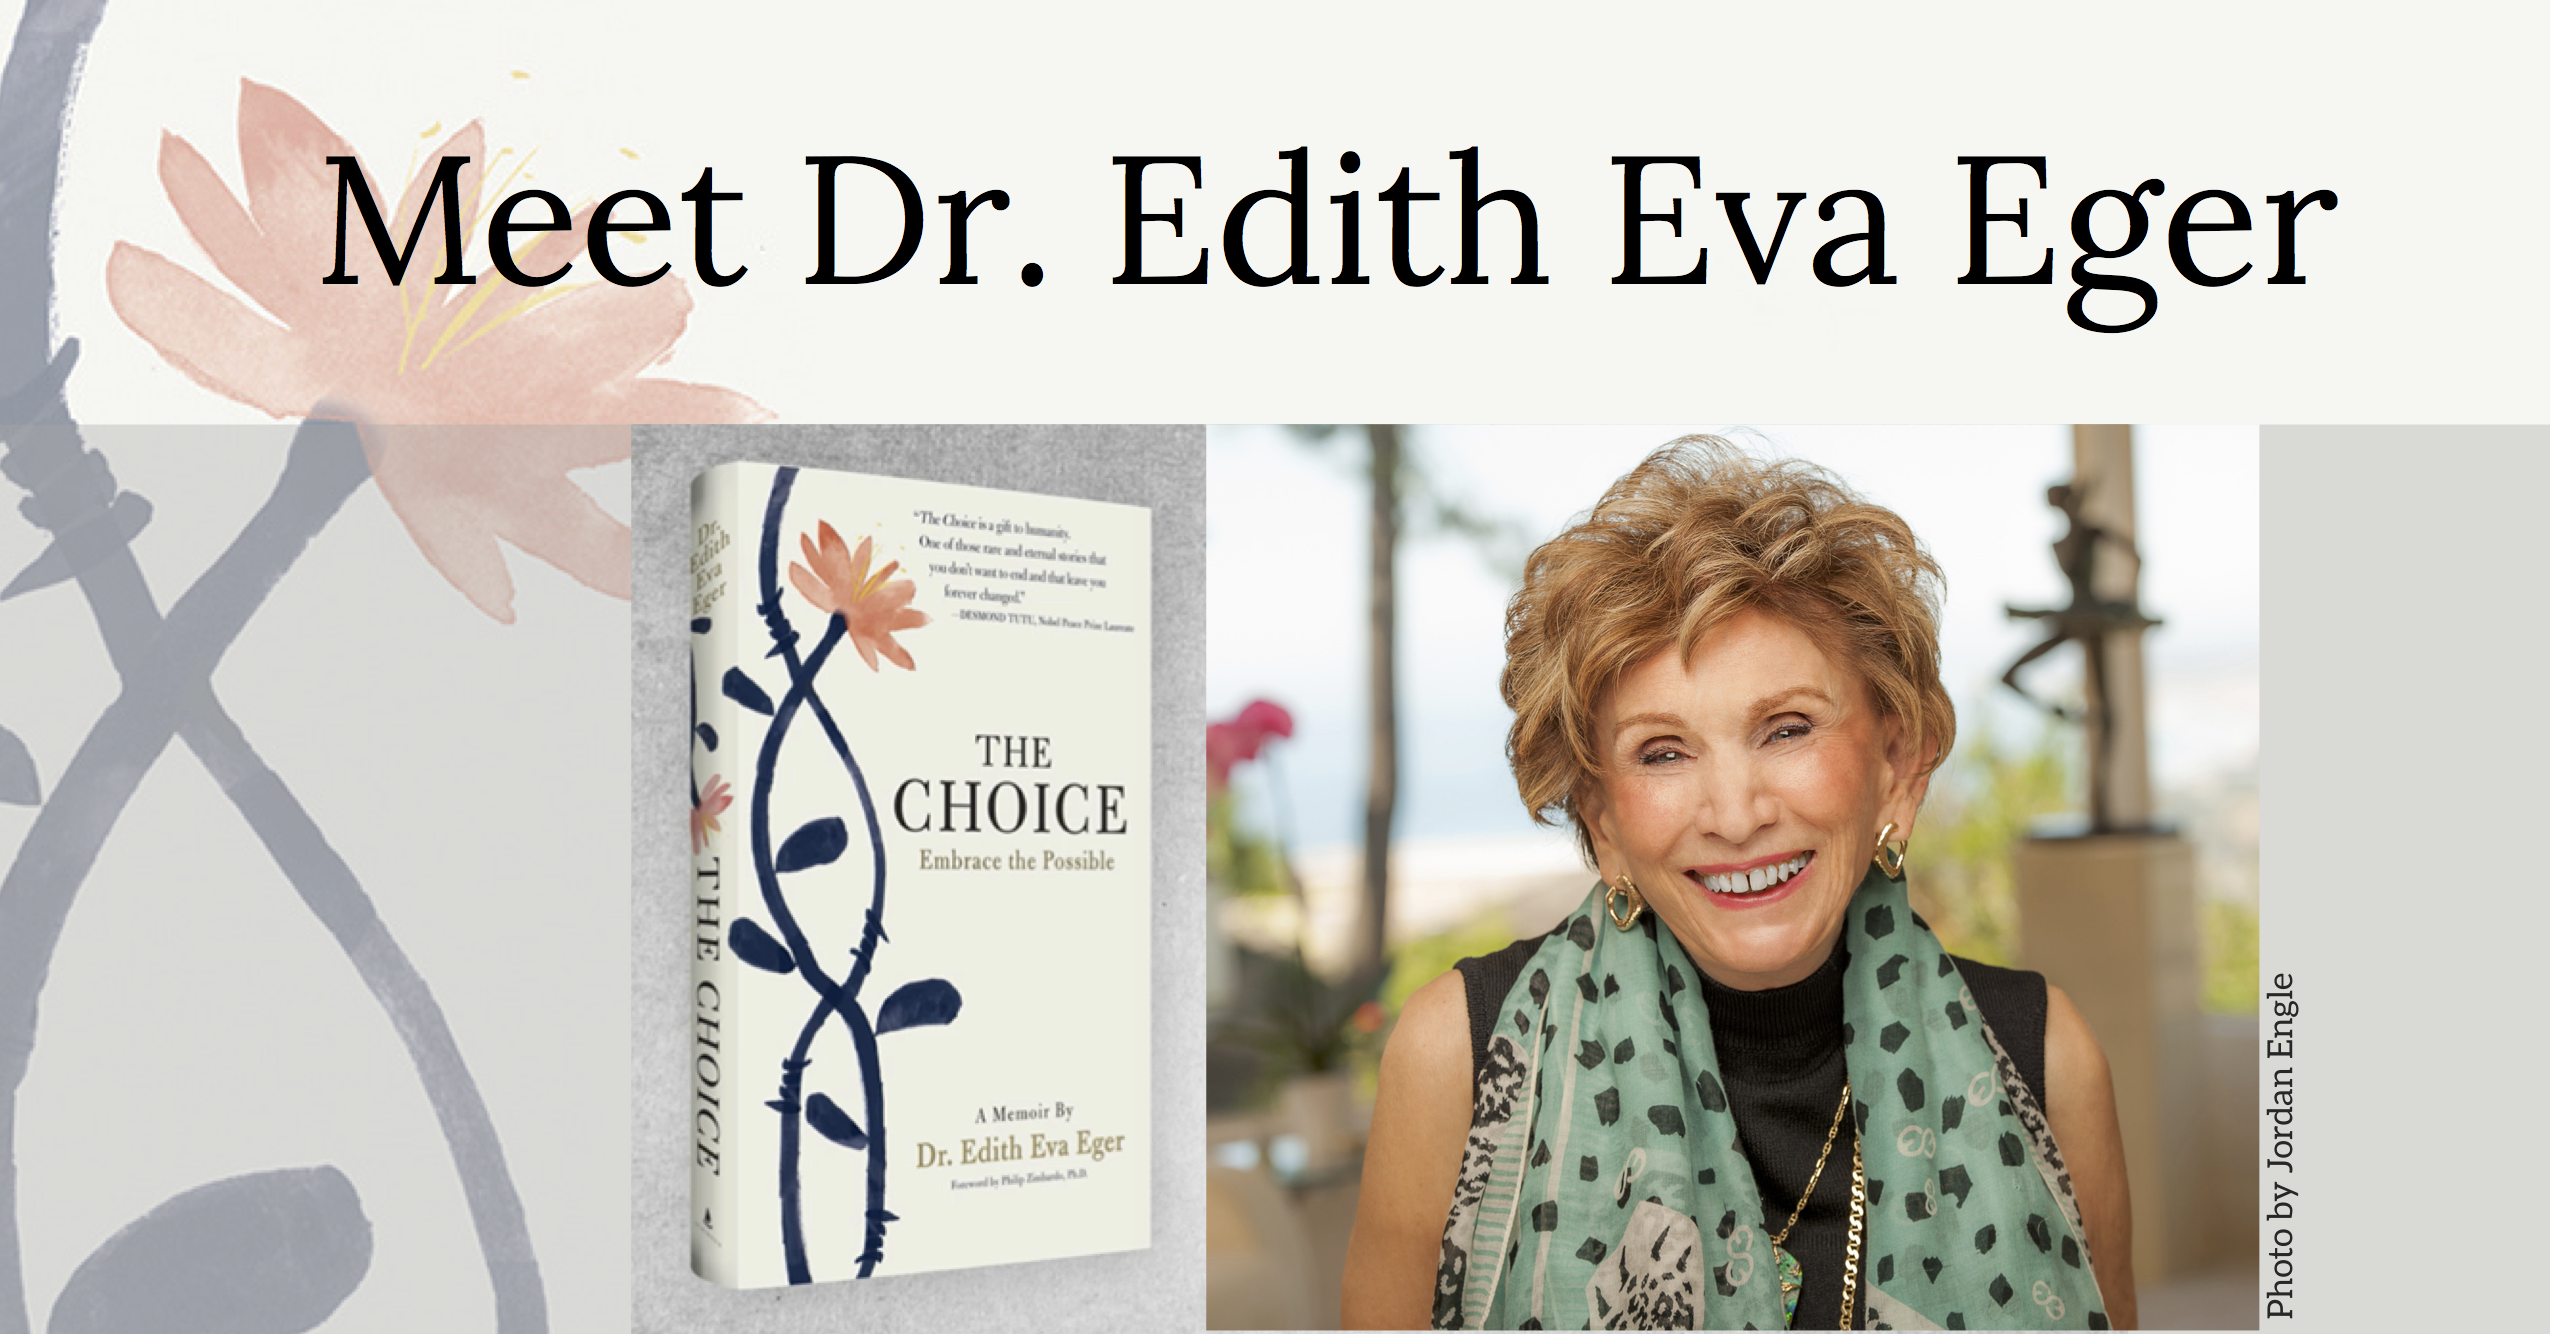 The Choice, by Dr. Edith Eva Eger